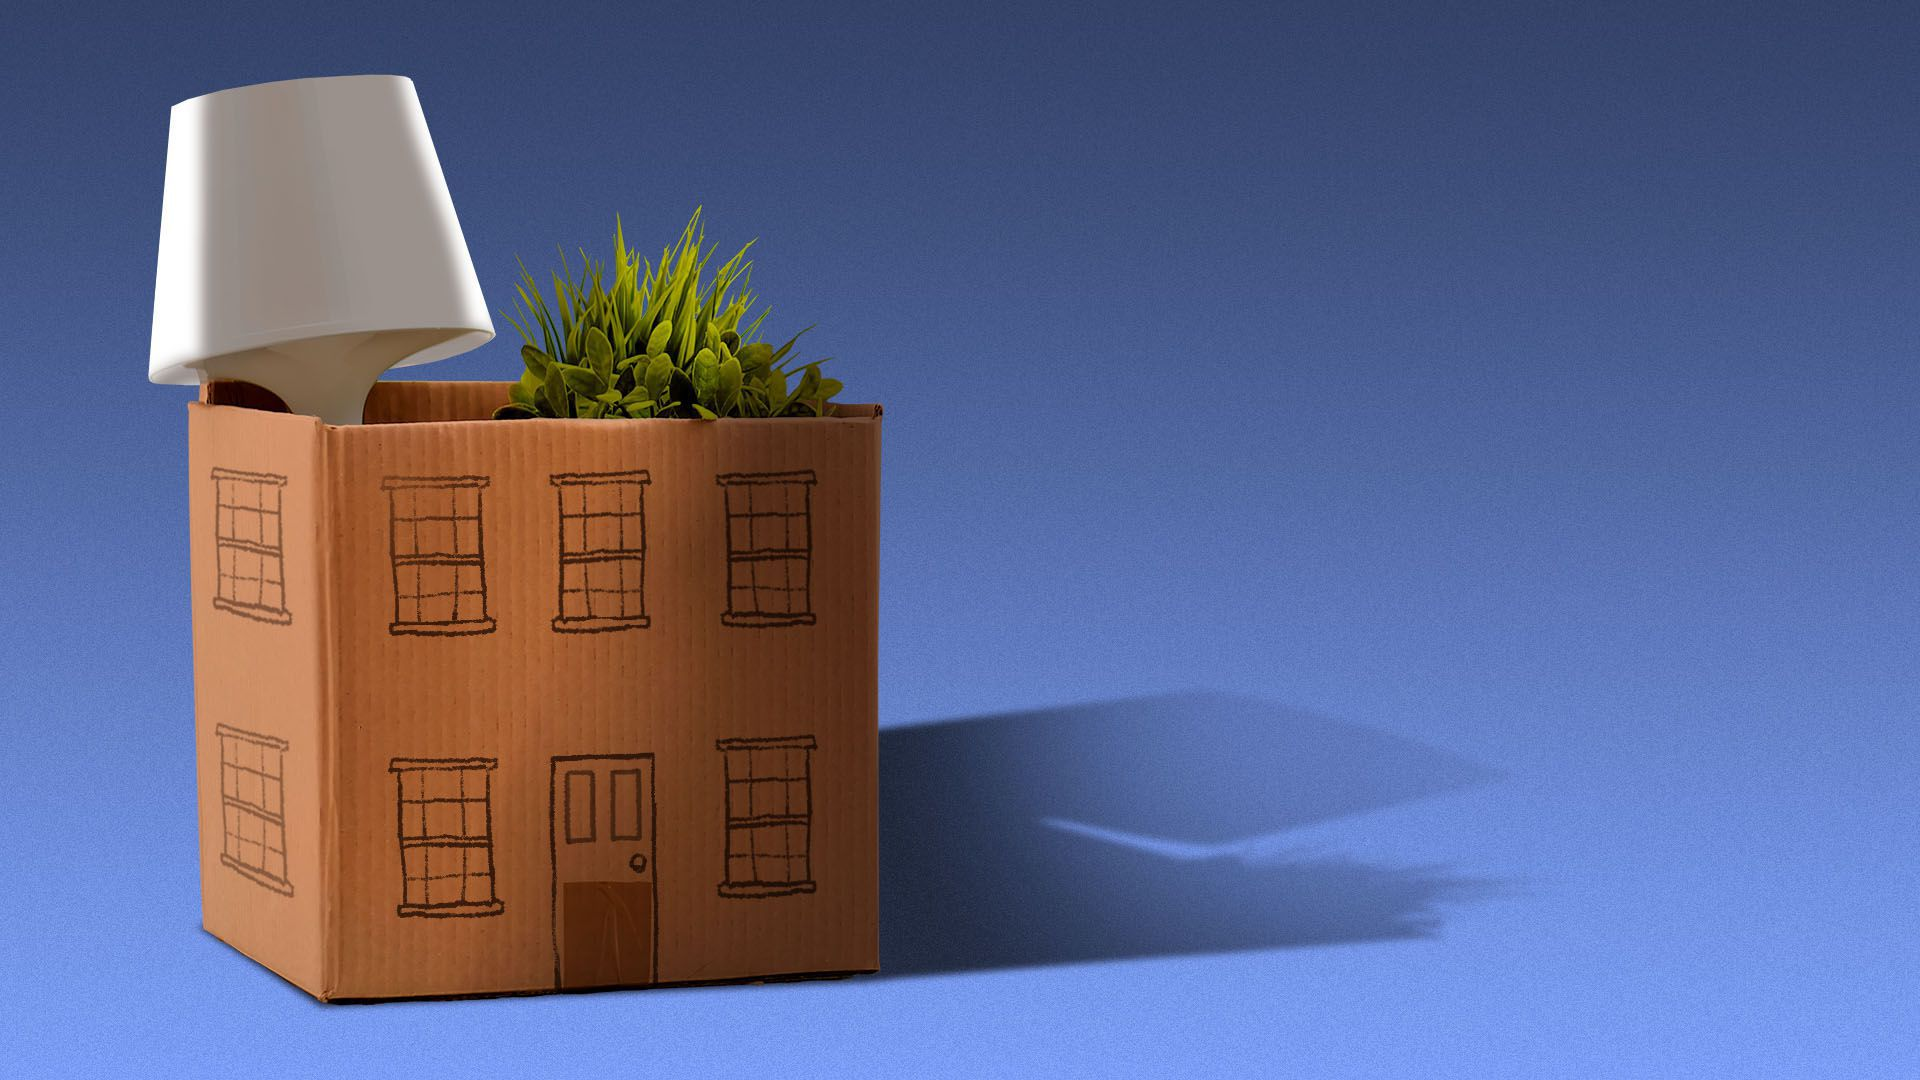 Illustration of a cardboard moving box with the facade of a house drawn on it